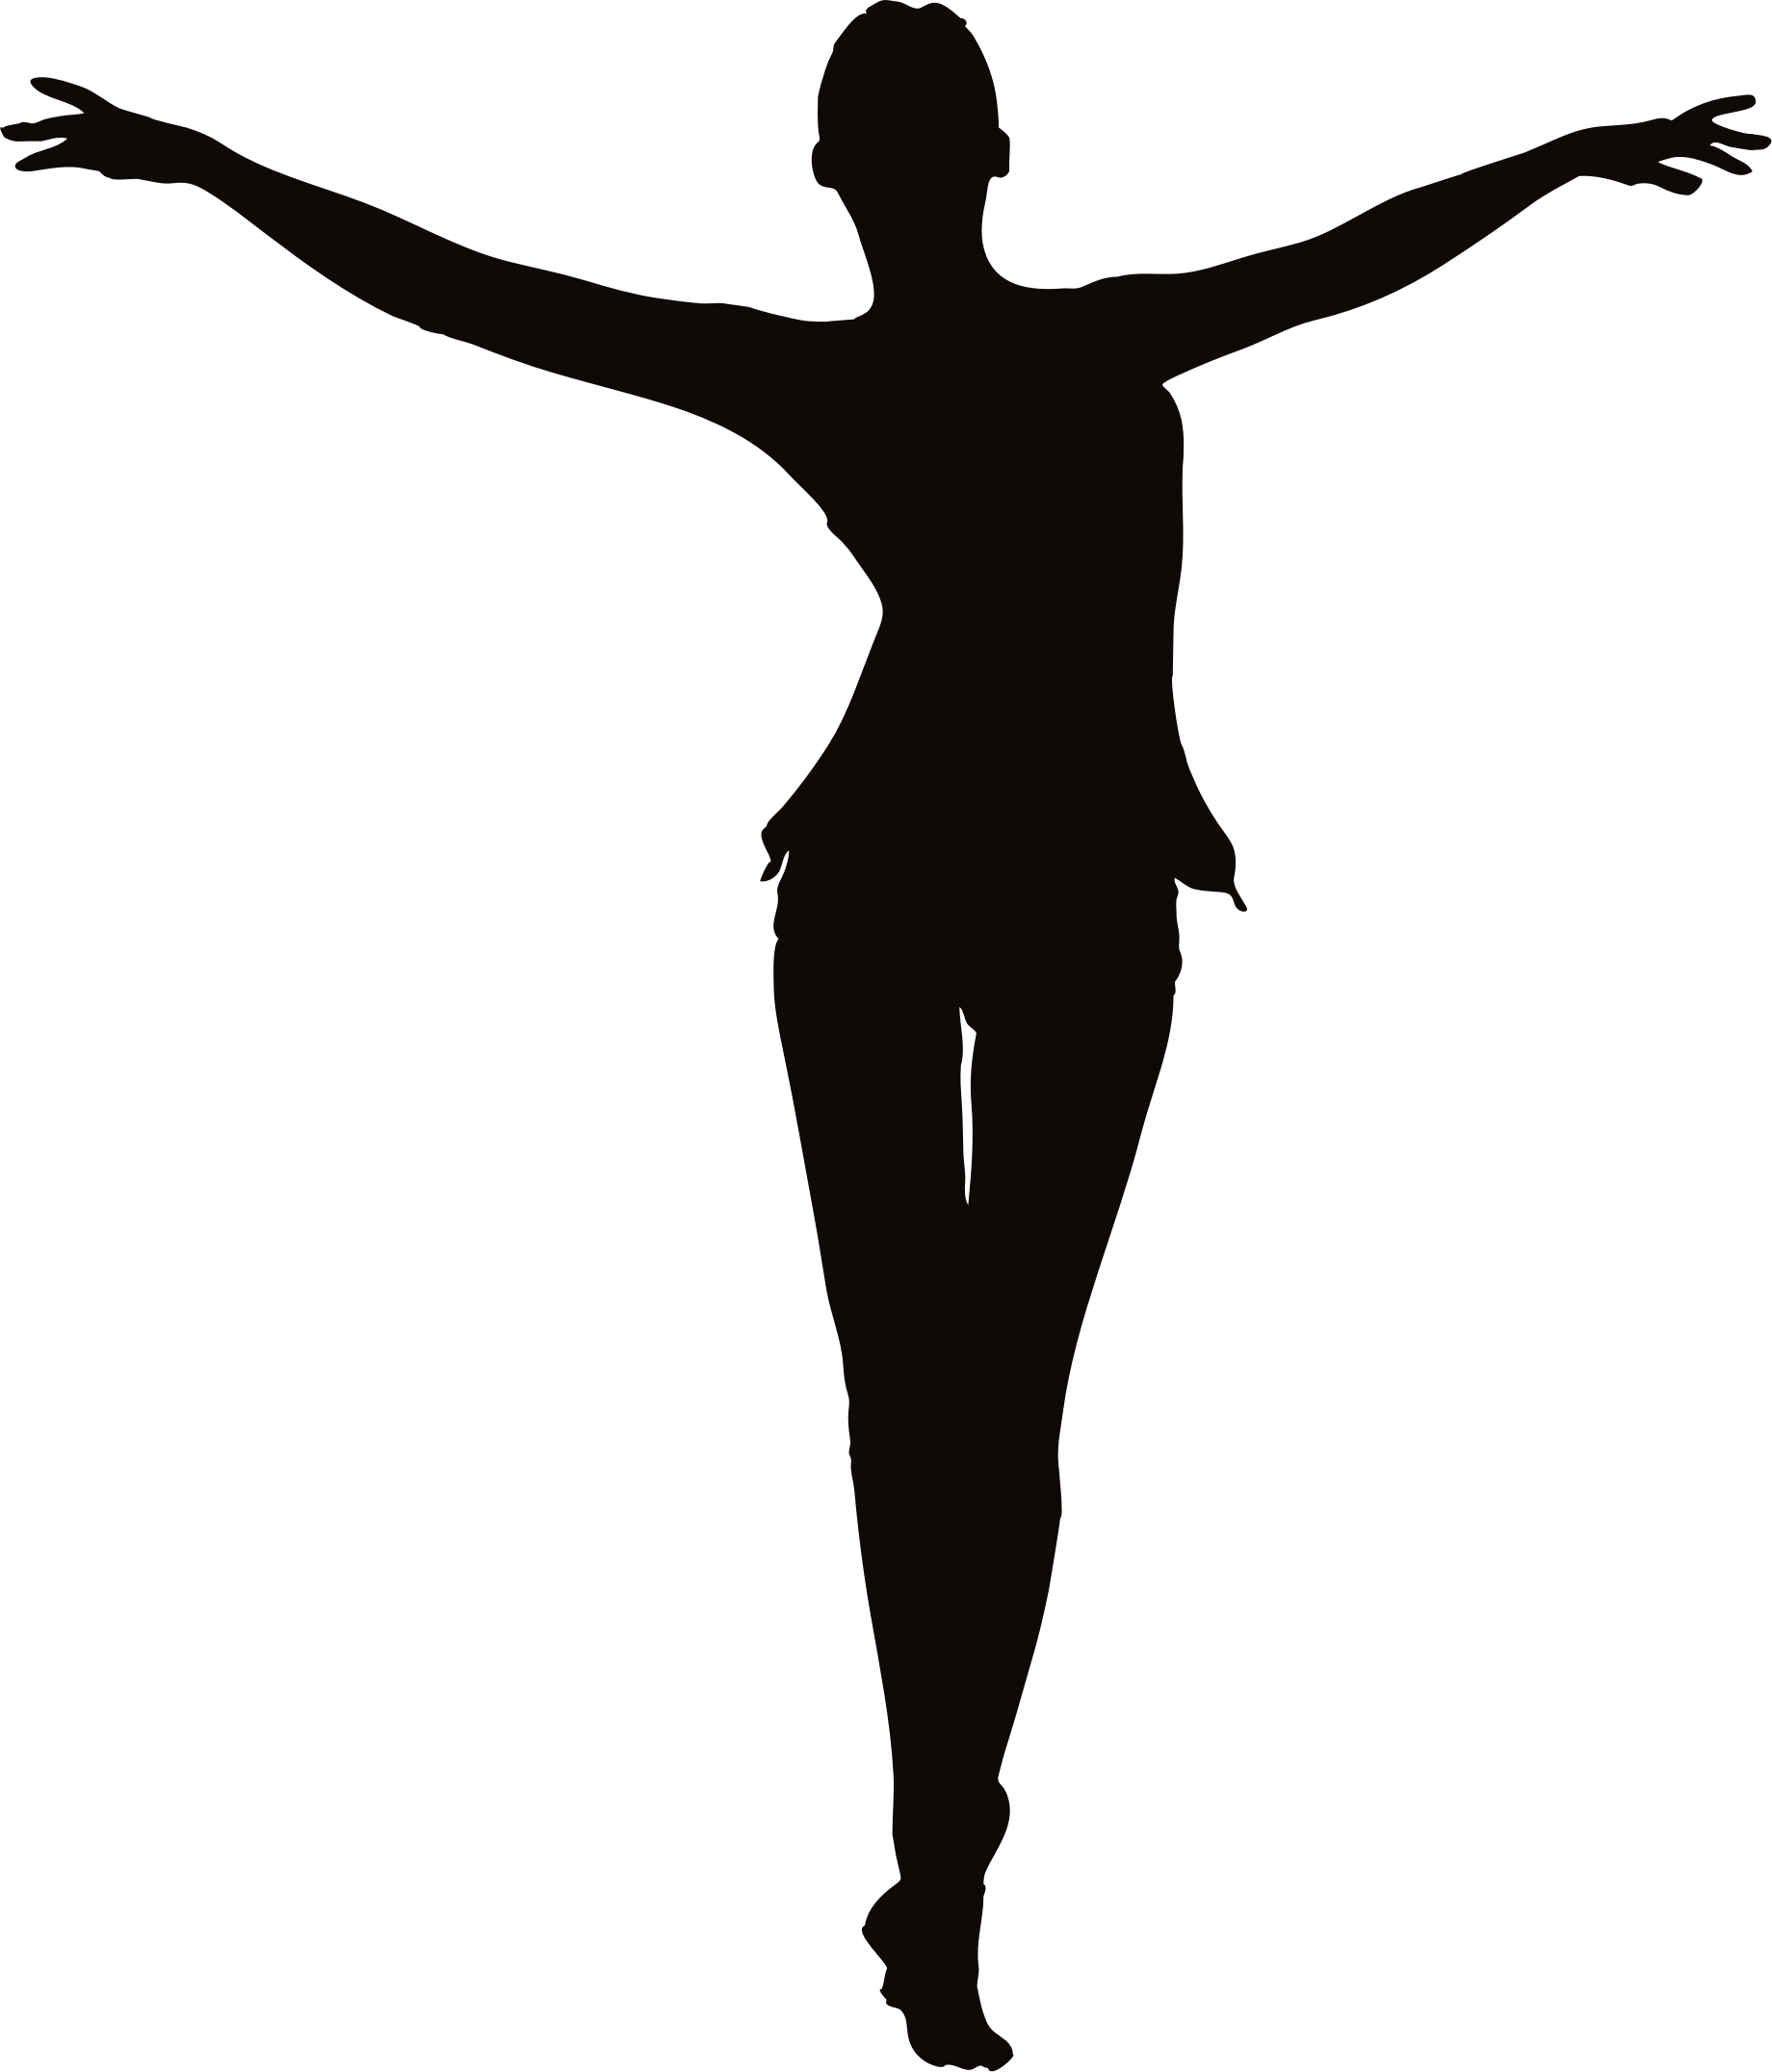 female figure arms up.